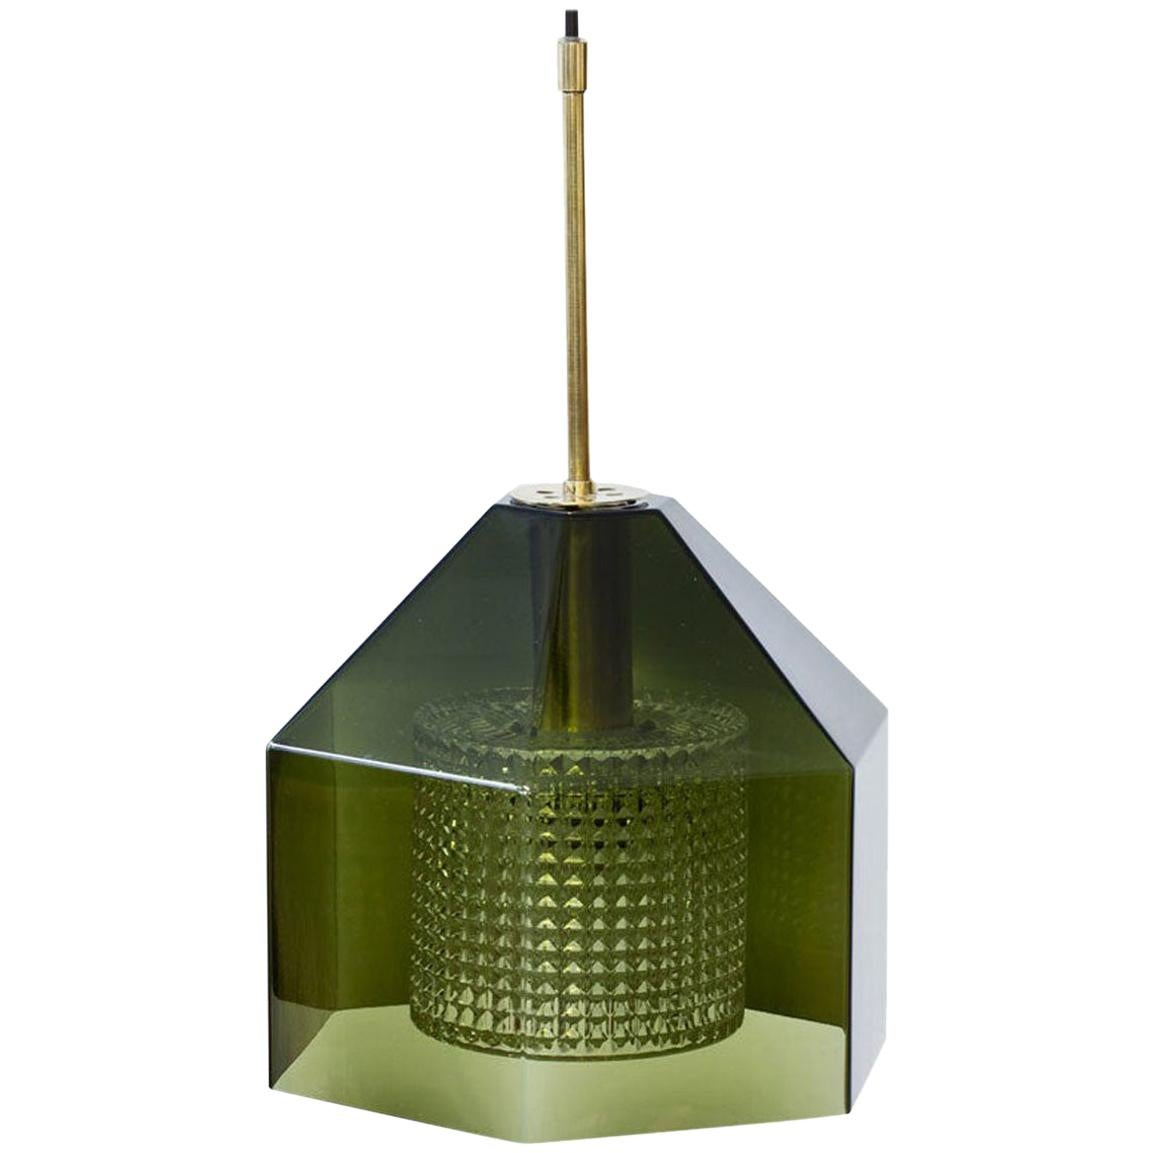 Glass and Brass Pendant Lamp by Carl Fagerlund for Orrefors, Sweden